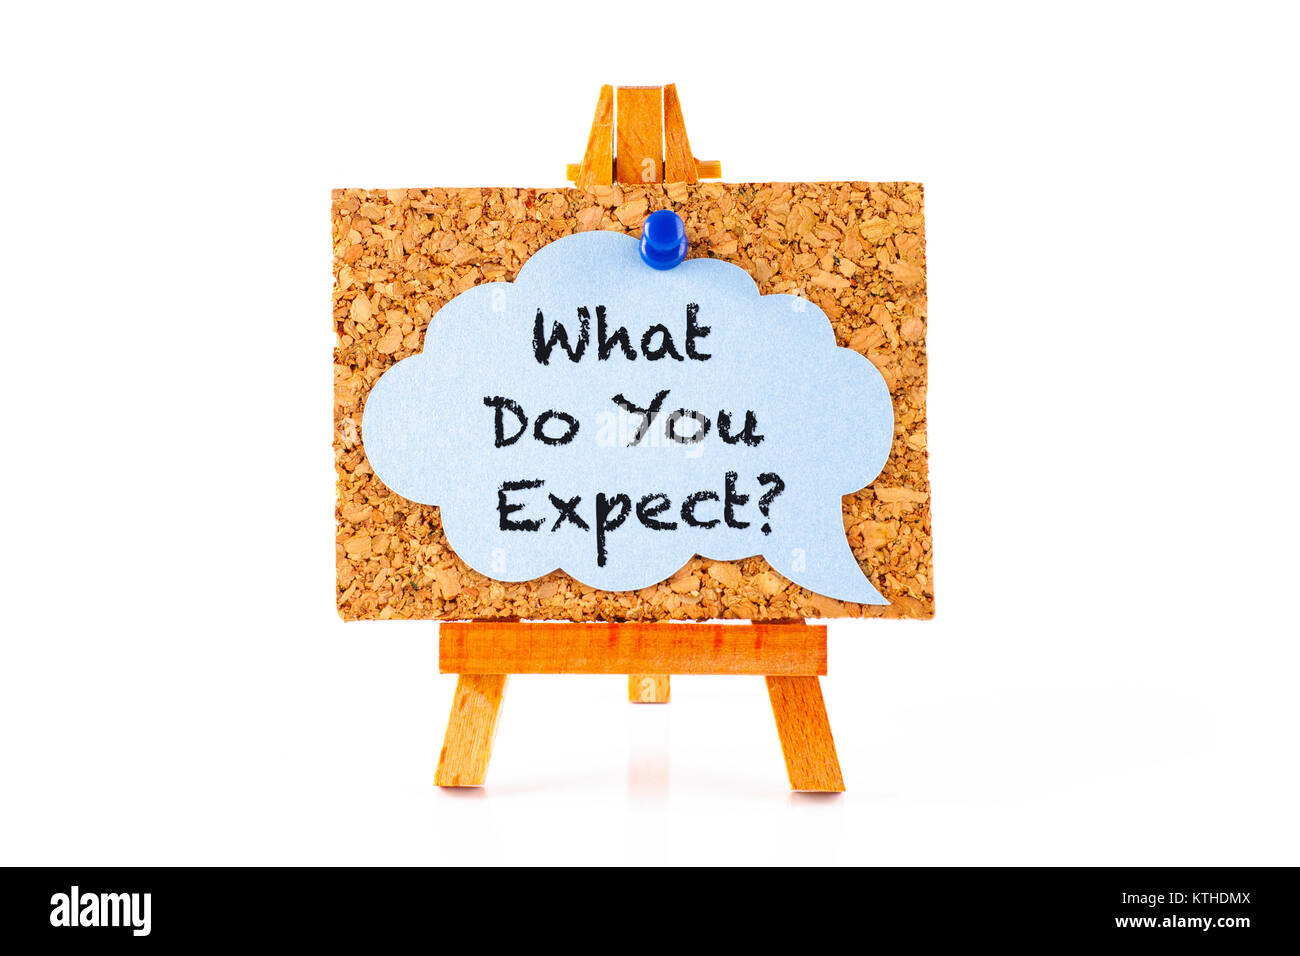 Phrase What Do You Expect? in blue speech bubble on corkboard with wooden easel. White background. - Stock Image